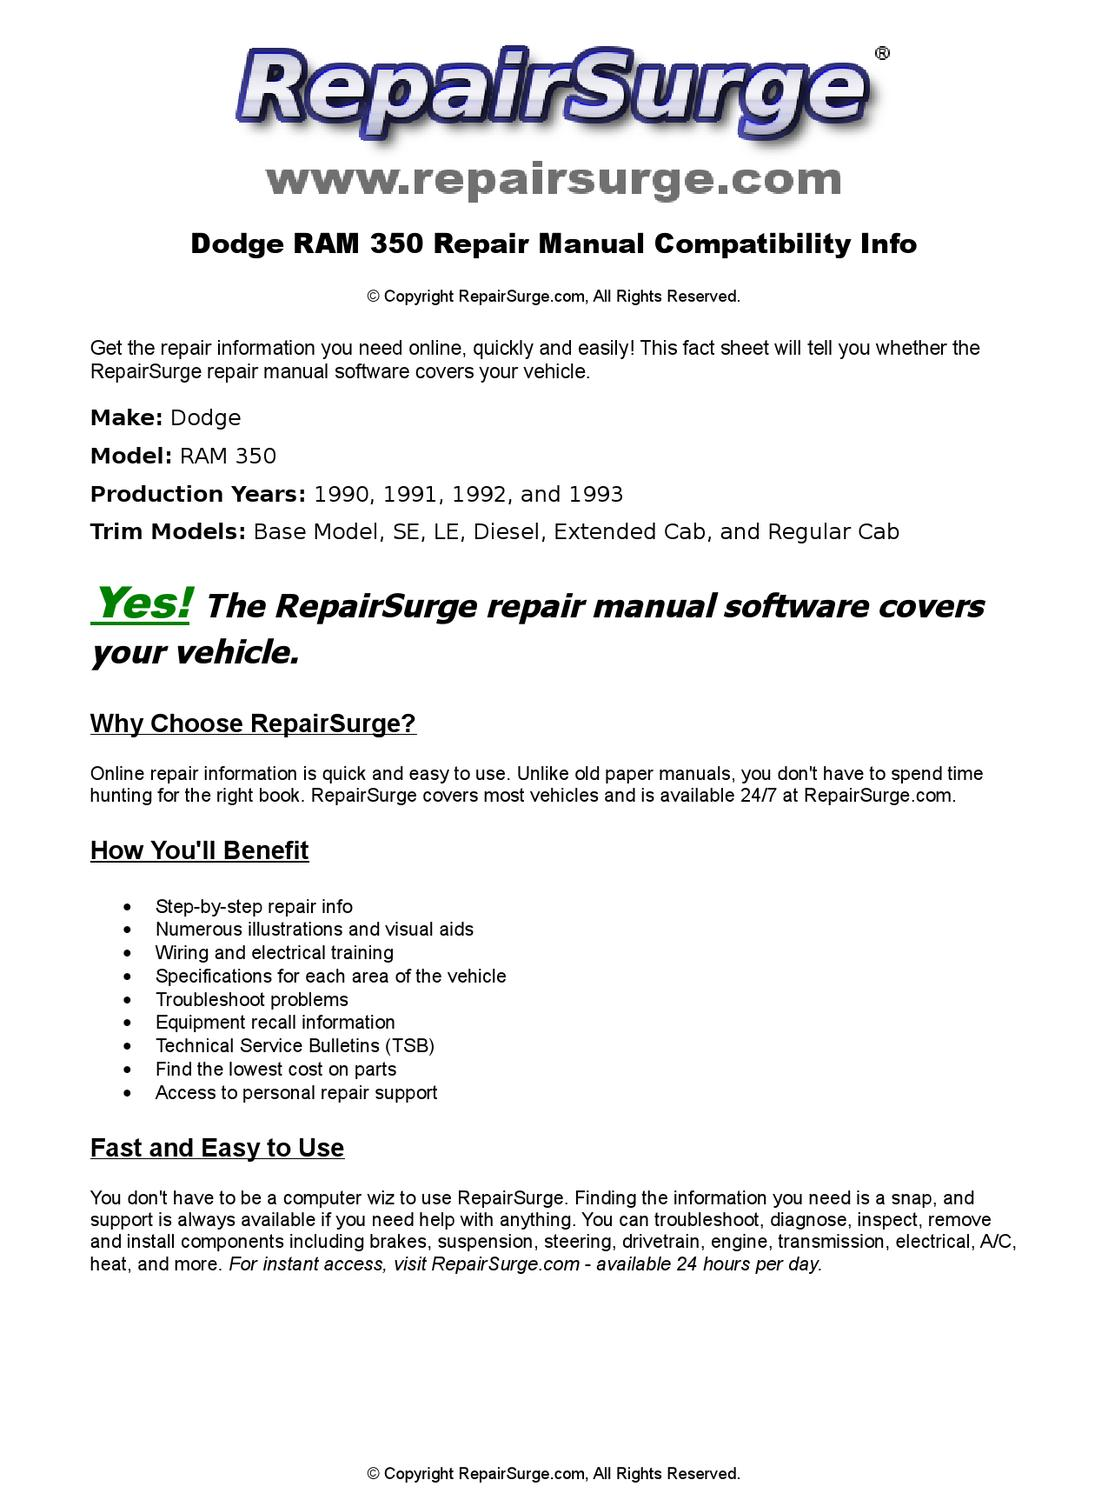 Dodge RAM 350 Online Repair Manual For 1990, 1991, 1992, and 1993 by  RepairSurge - issuu